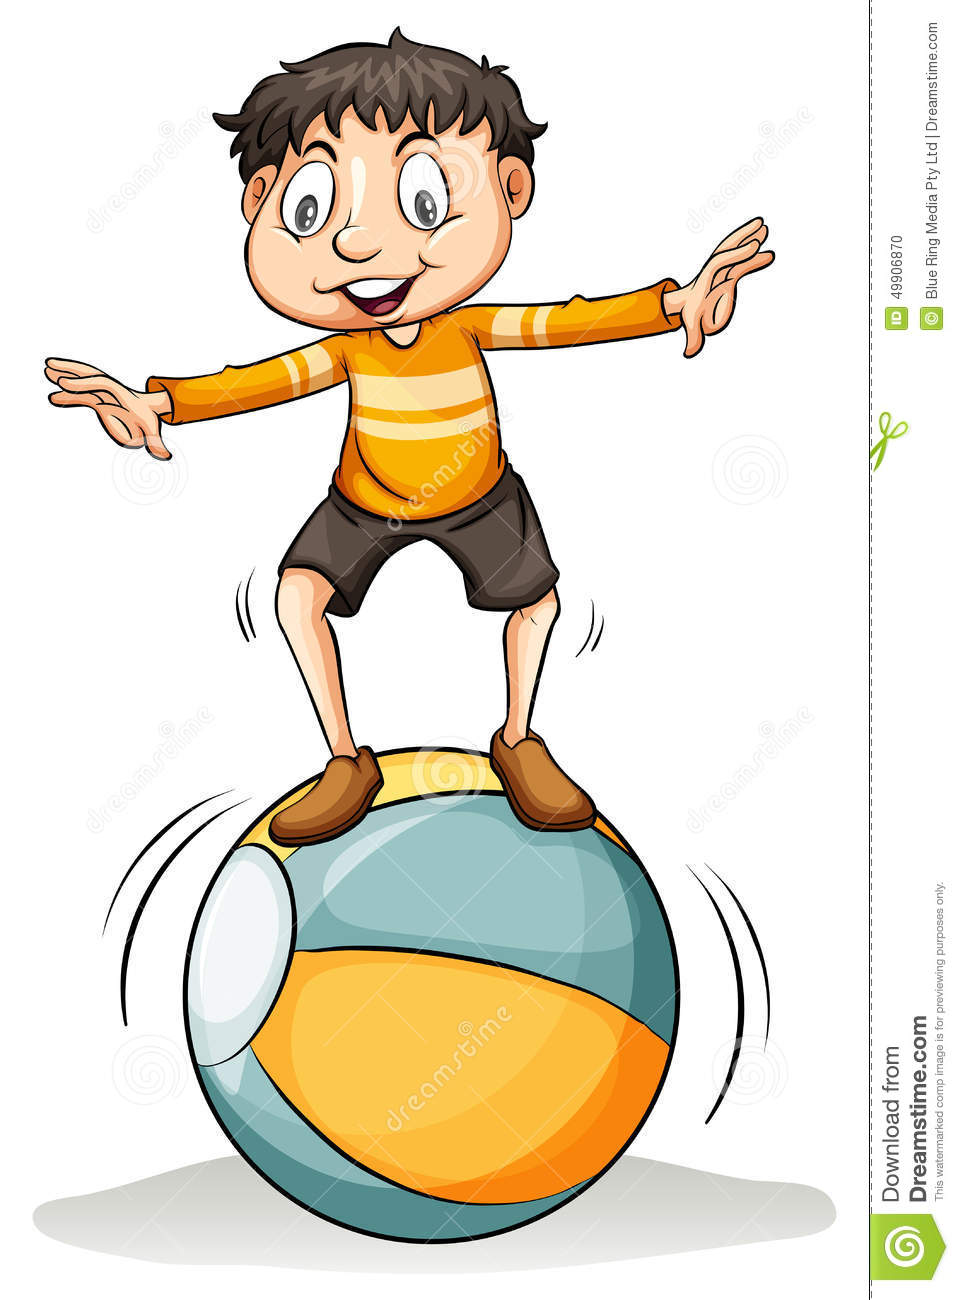 Boy On The Ball Stock Vector - Image: 49906870